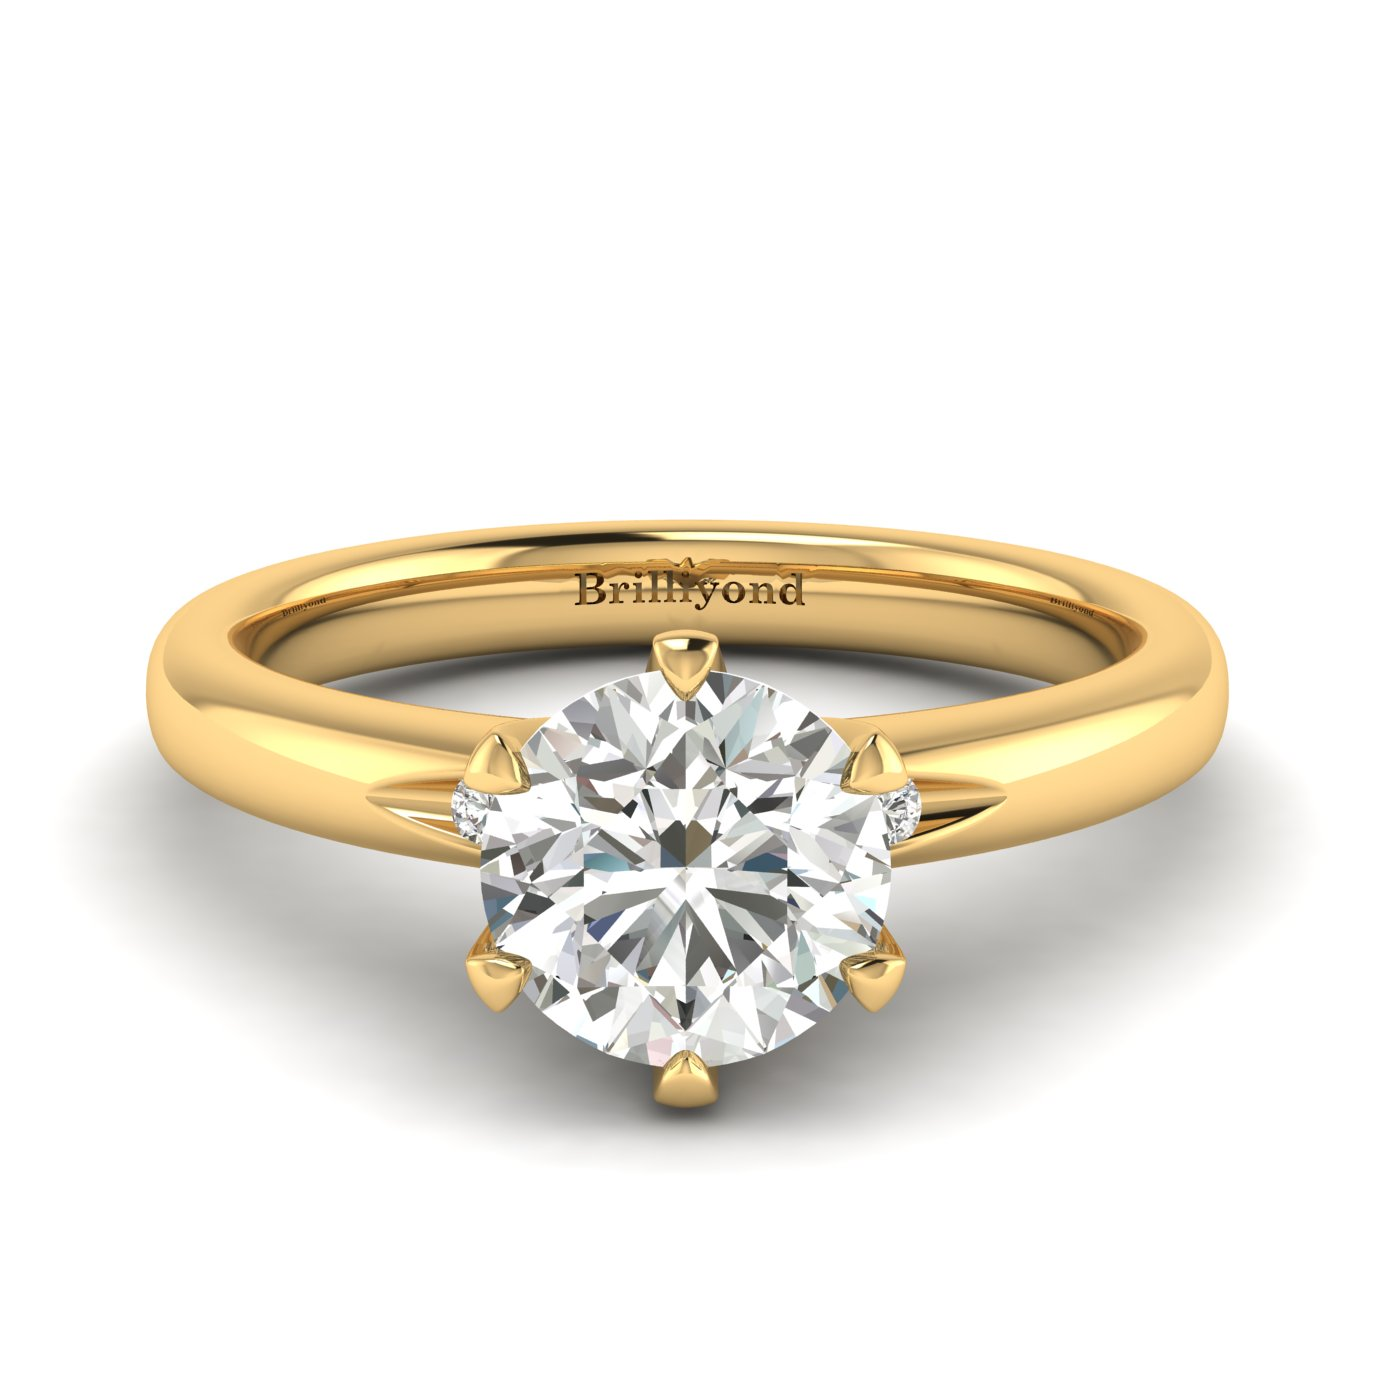 White Sapphire Yellow Gold Solitaire Engagement Ring Byond_image2